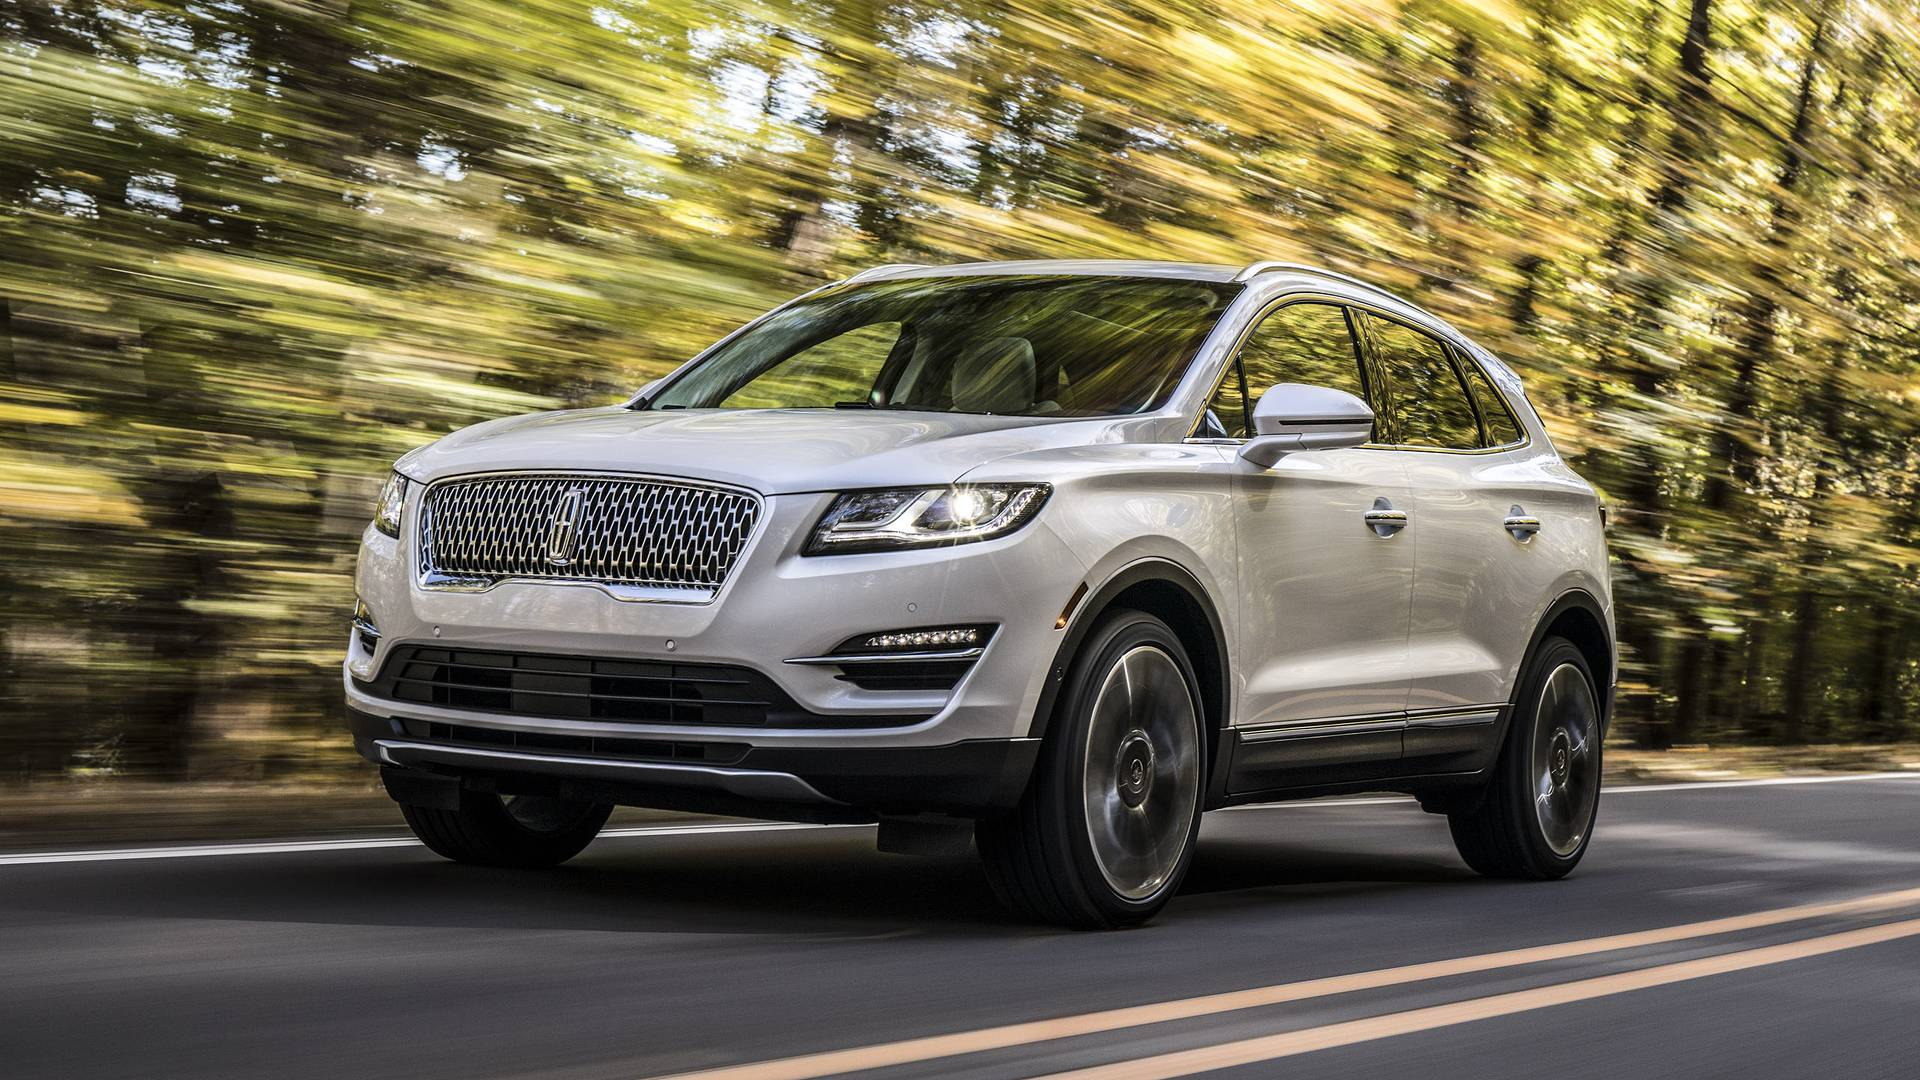 us powerful lna nautilus unveiled assistance en performance assist roadside content pairs crossovers suvs with lincoln lincolnmedia new products driver